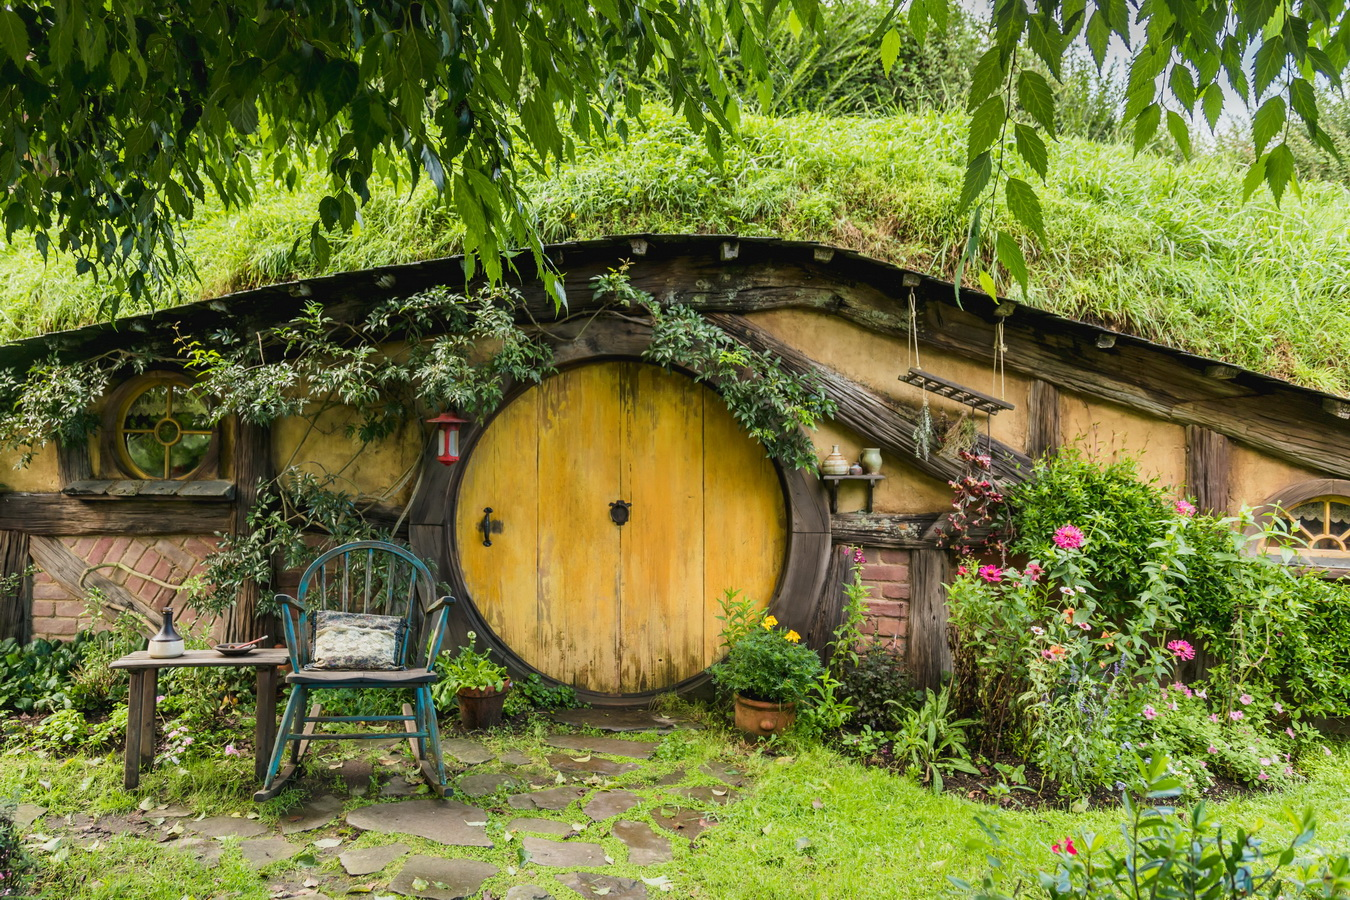 нора,The Hobbiton, The Shire,Хоббитшир, Удел, Хоббитания, Заселье, Край,Matamata, North Island ,New Zealand